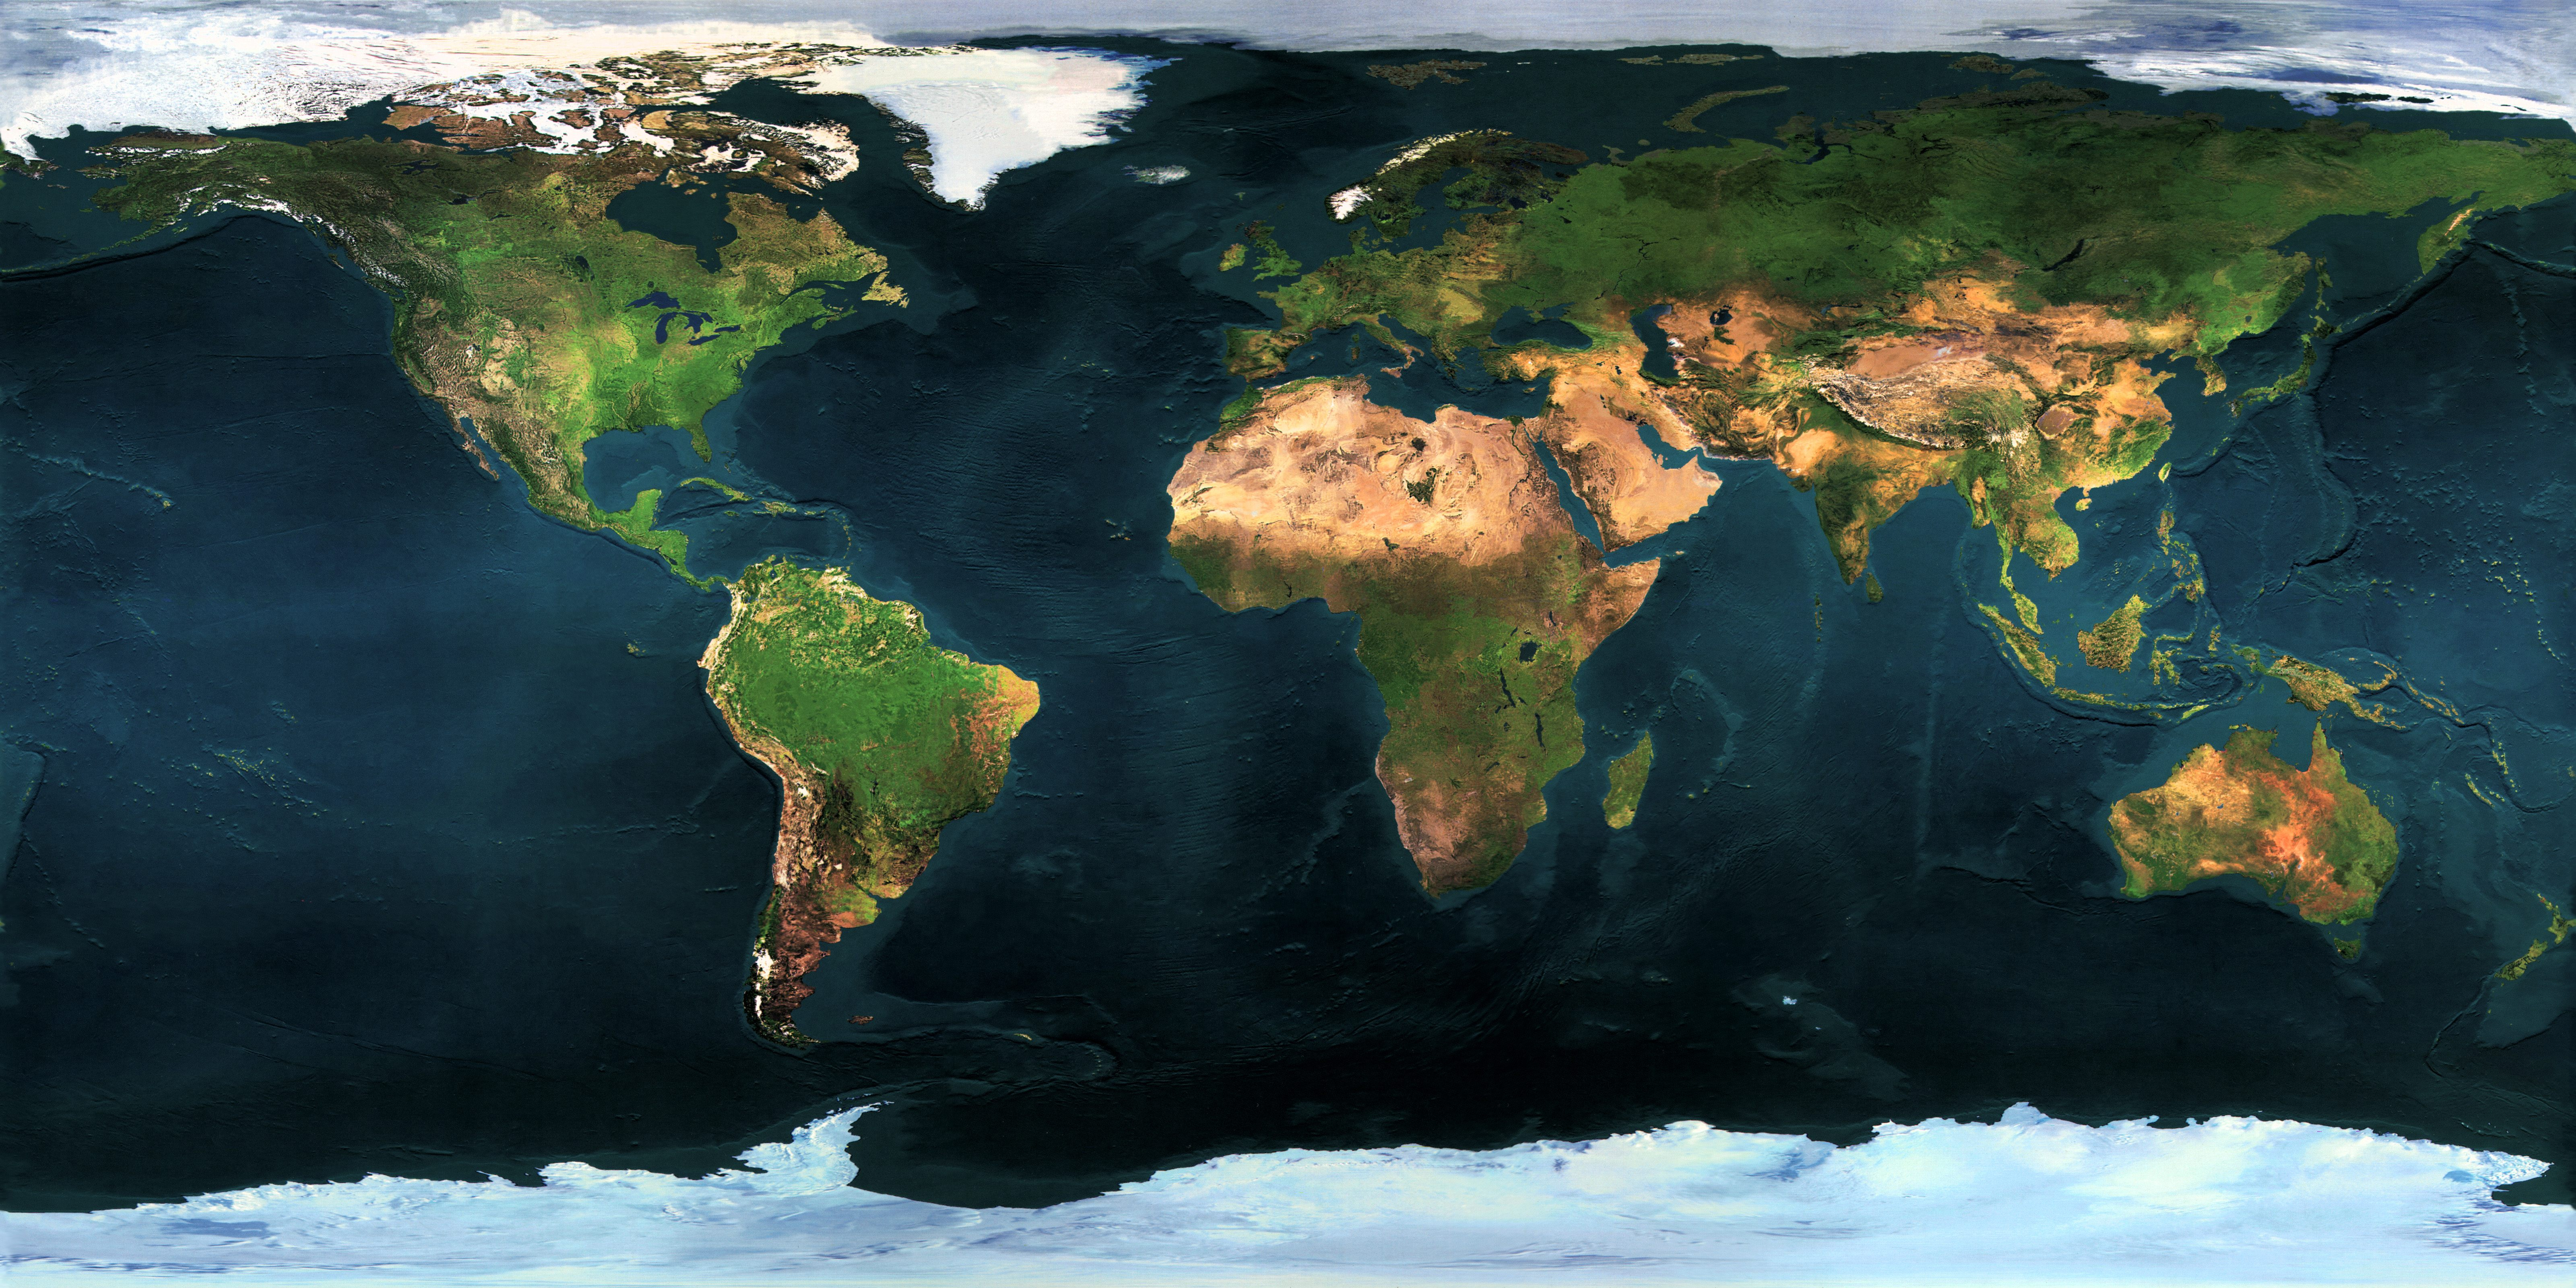 Full Earth Map.Ask Ethan 4 Weird Astronomy Maps Scienceblogs